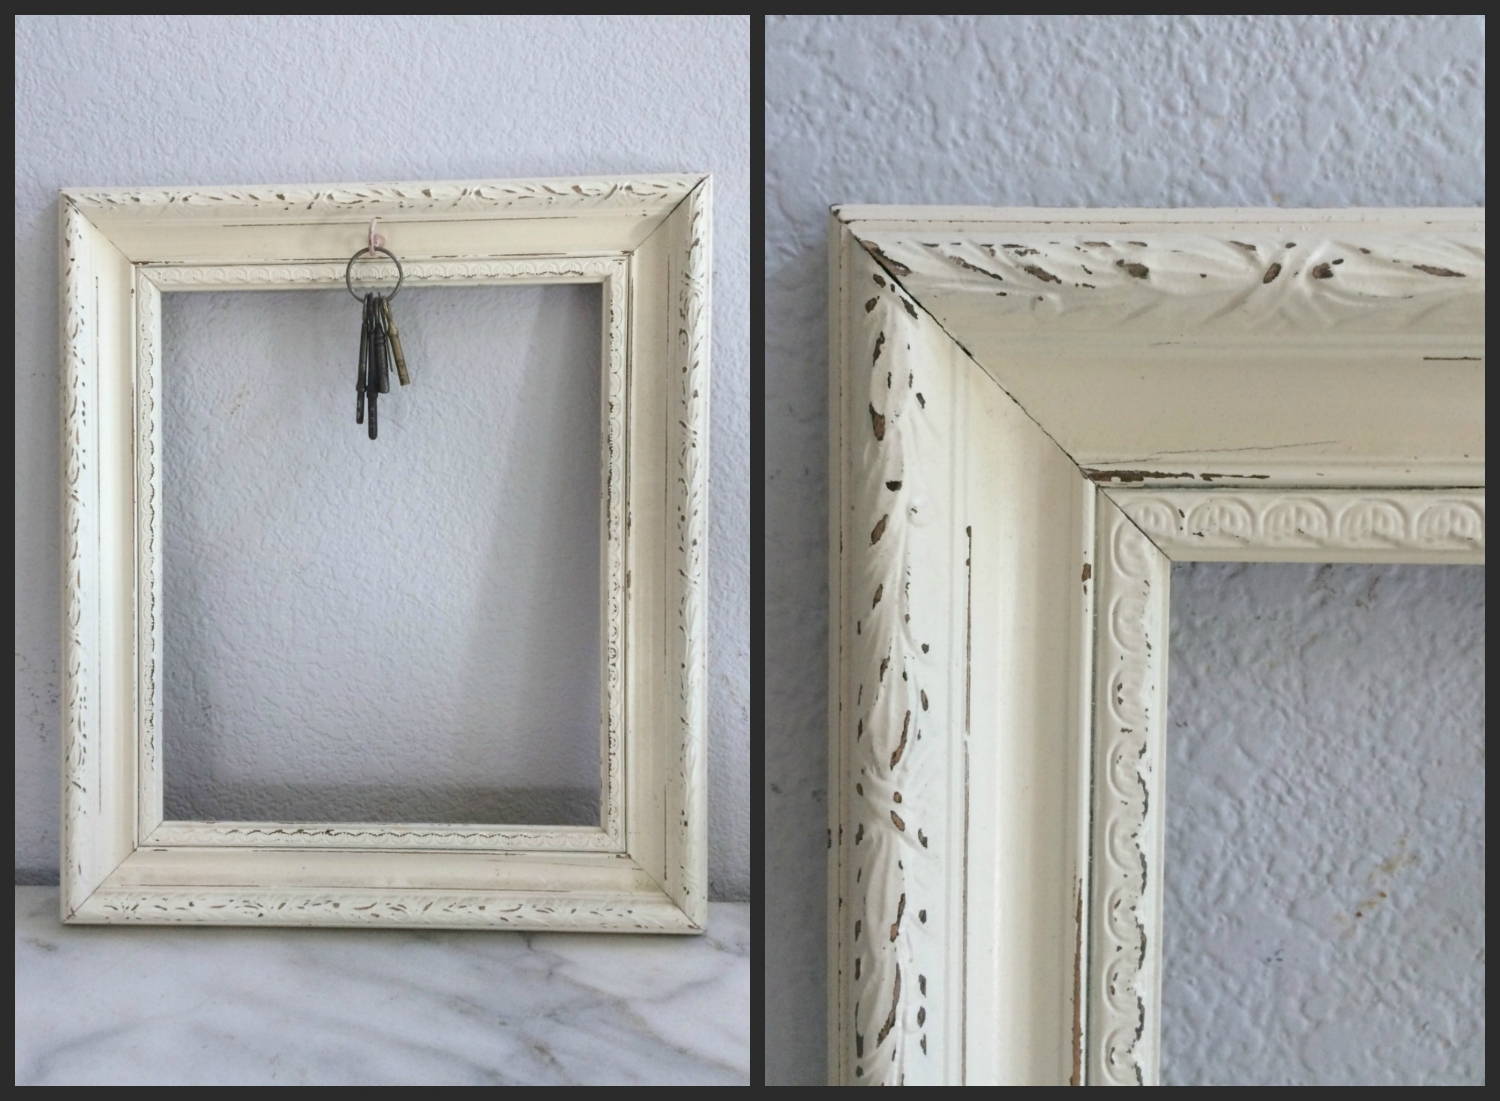 SMALL - IVORY W/ HOOK FOR HANGING AN ACCENT - $10 - 10 X 12